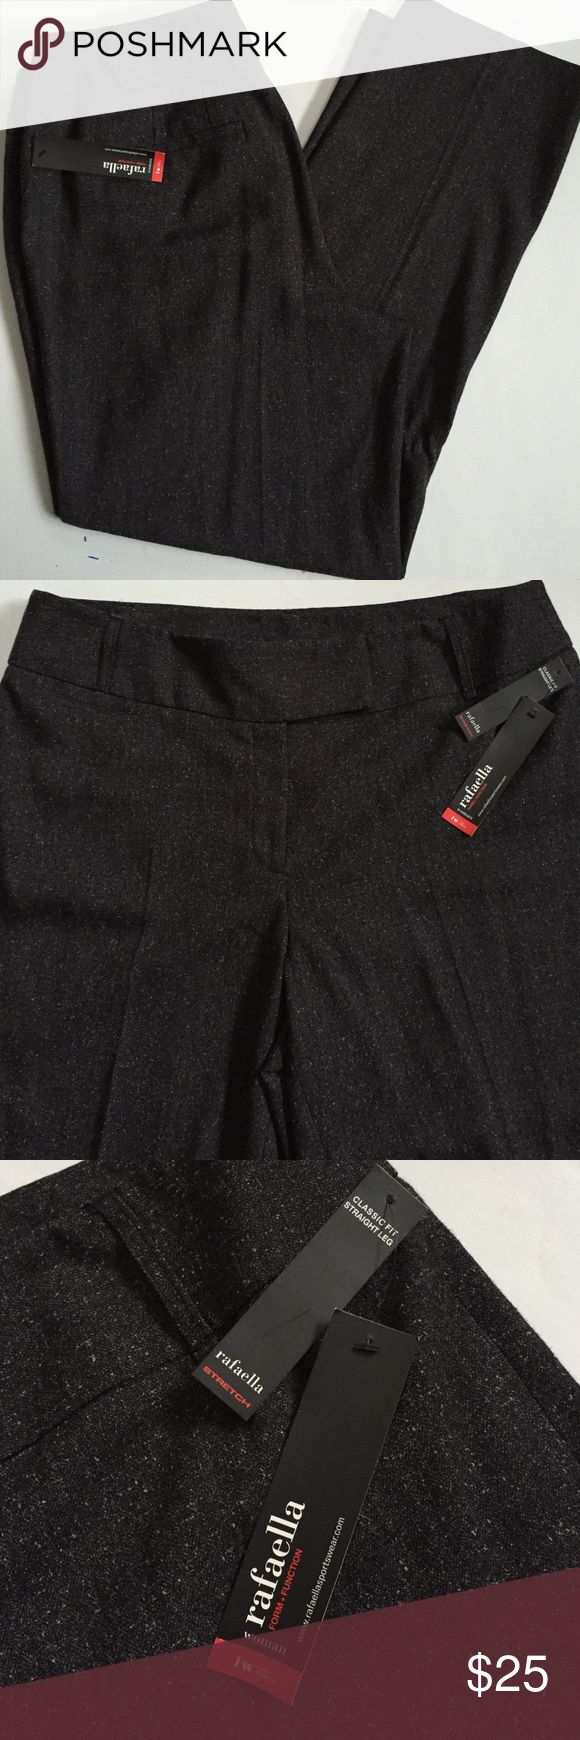 "NWT Rafaella pants New with tags; The perfect pair of slacks! Dark gray tweed polyester/rayon/spandex; 32"" inseam; great for work! Smoke-free/pet-free home. Rafaella Pants Trousers"